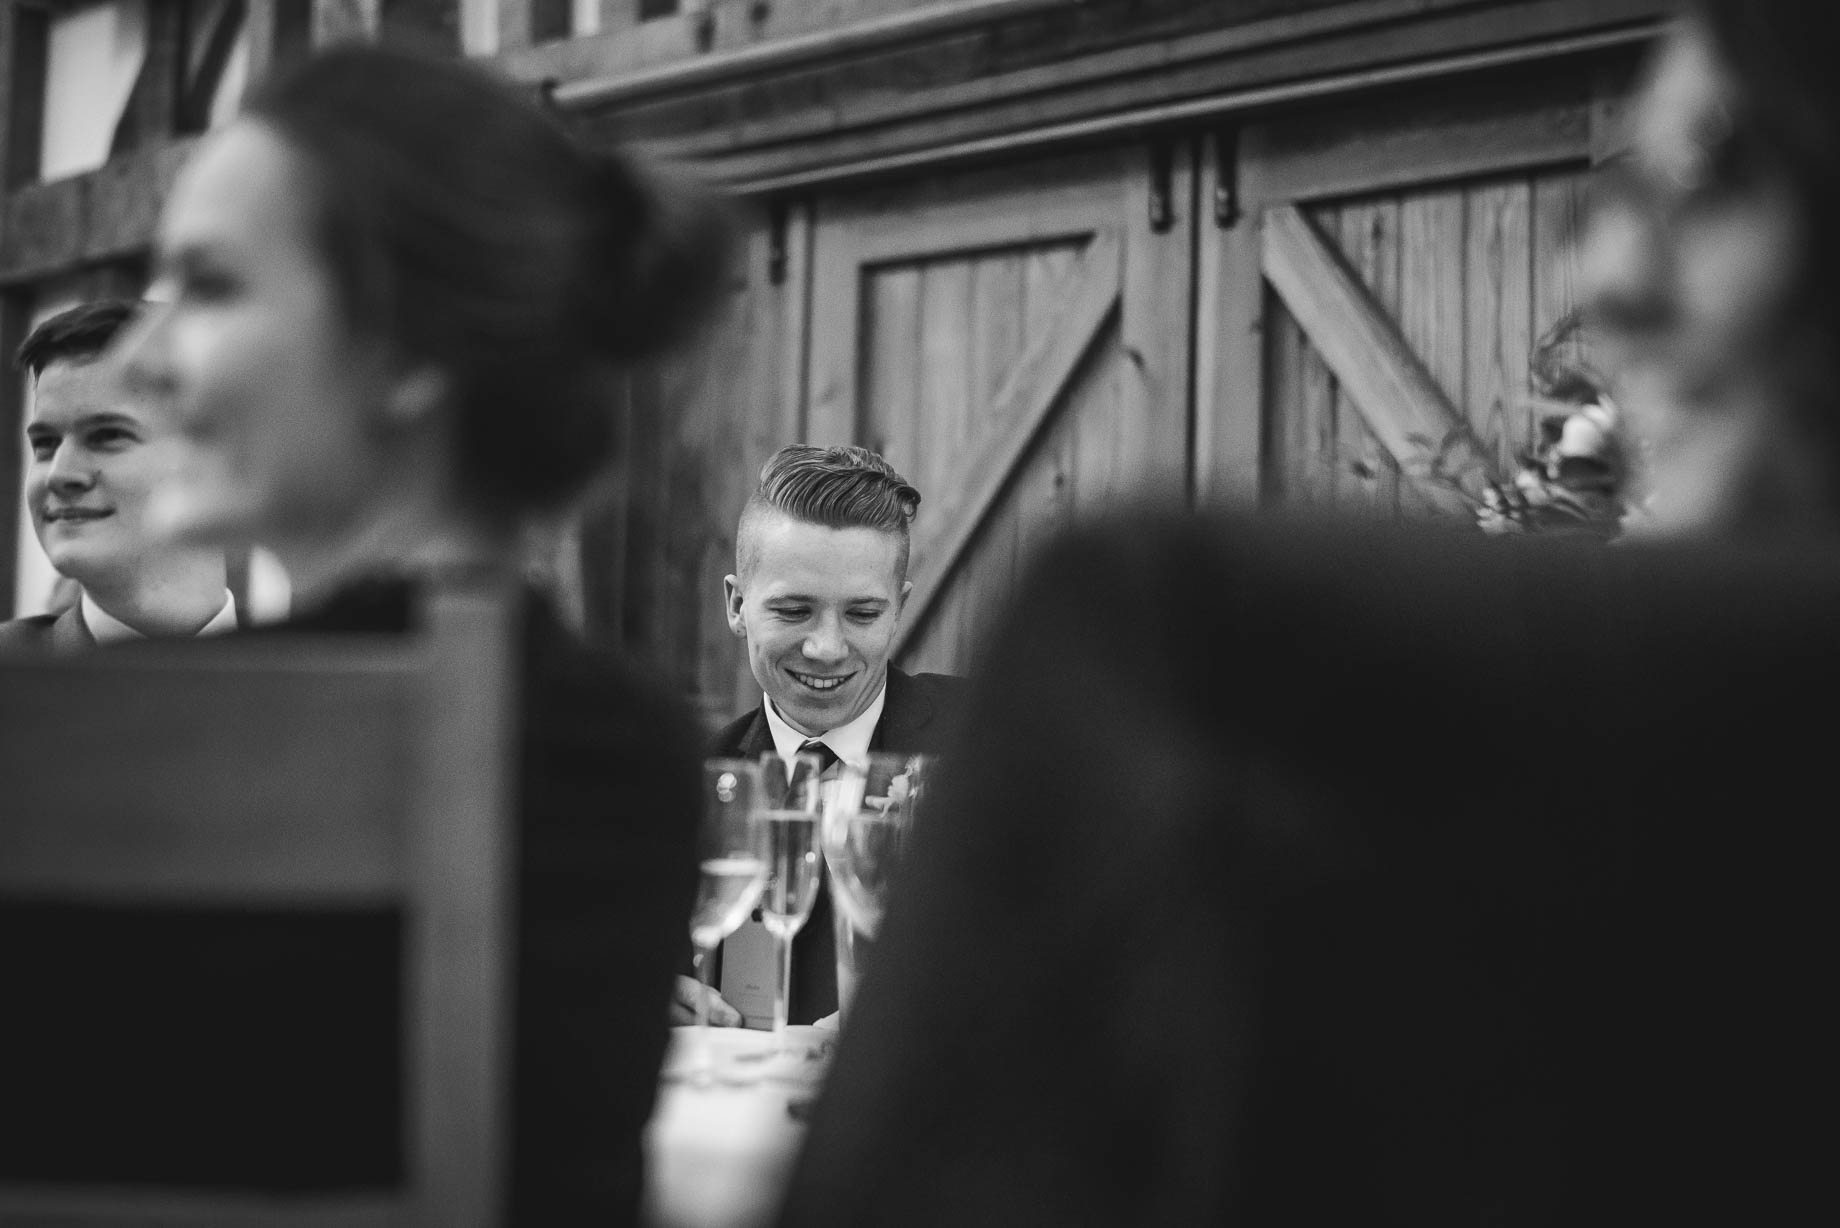 Surrey Wedding Photography by Guy Collier - Becca and James (137 of 145)